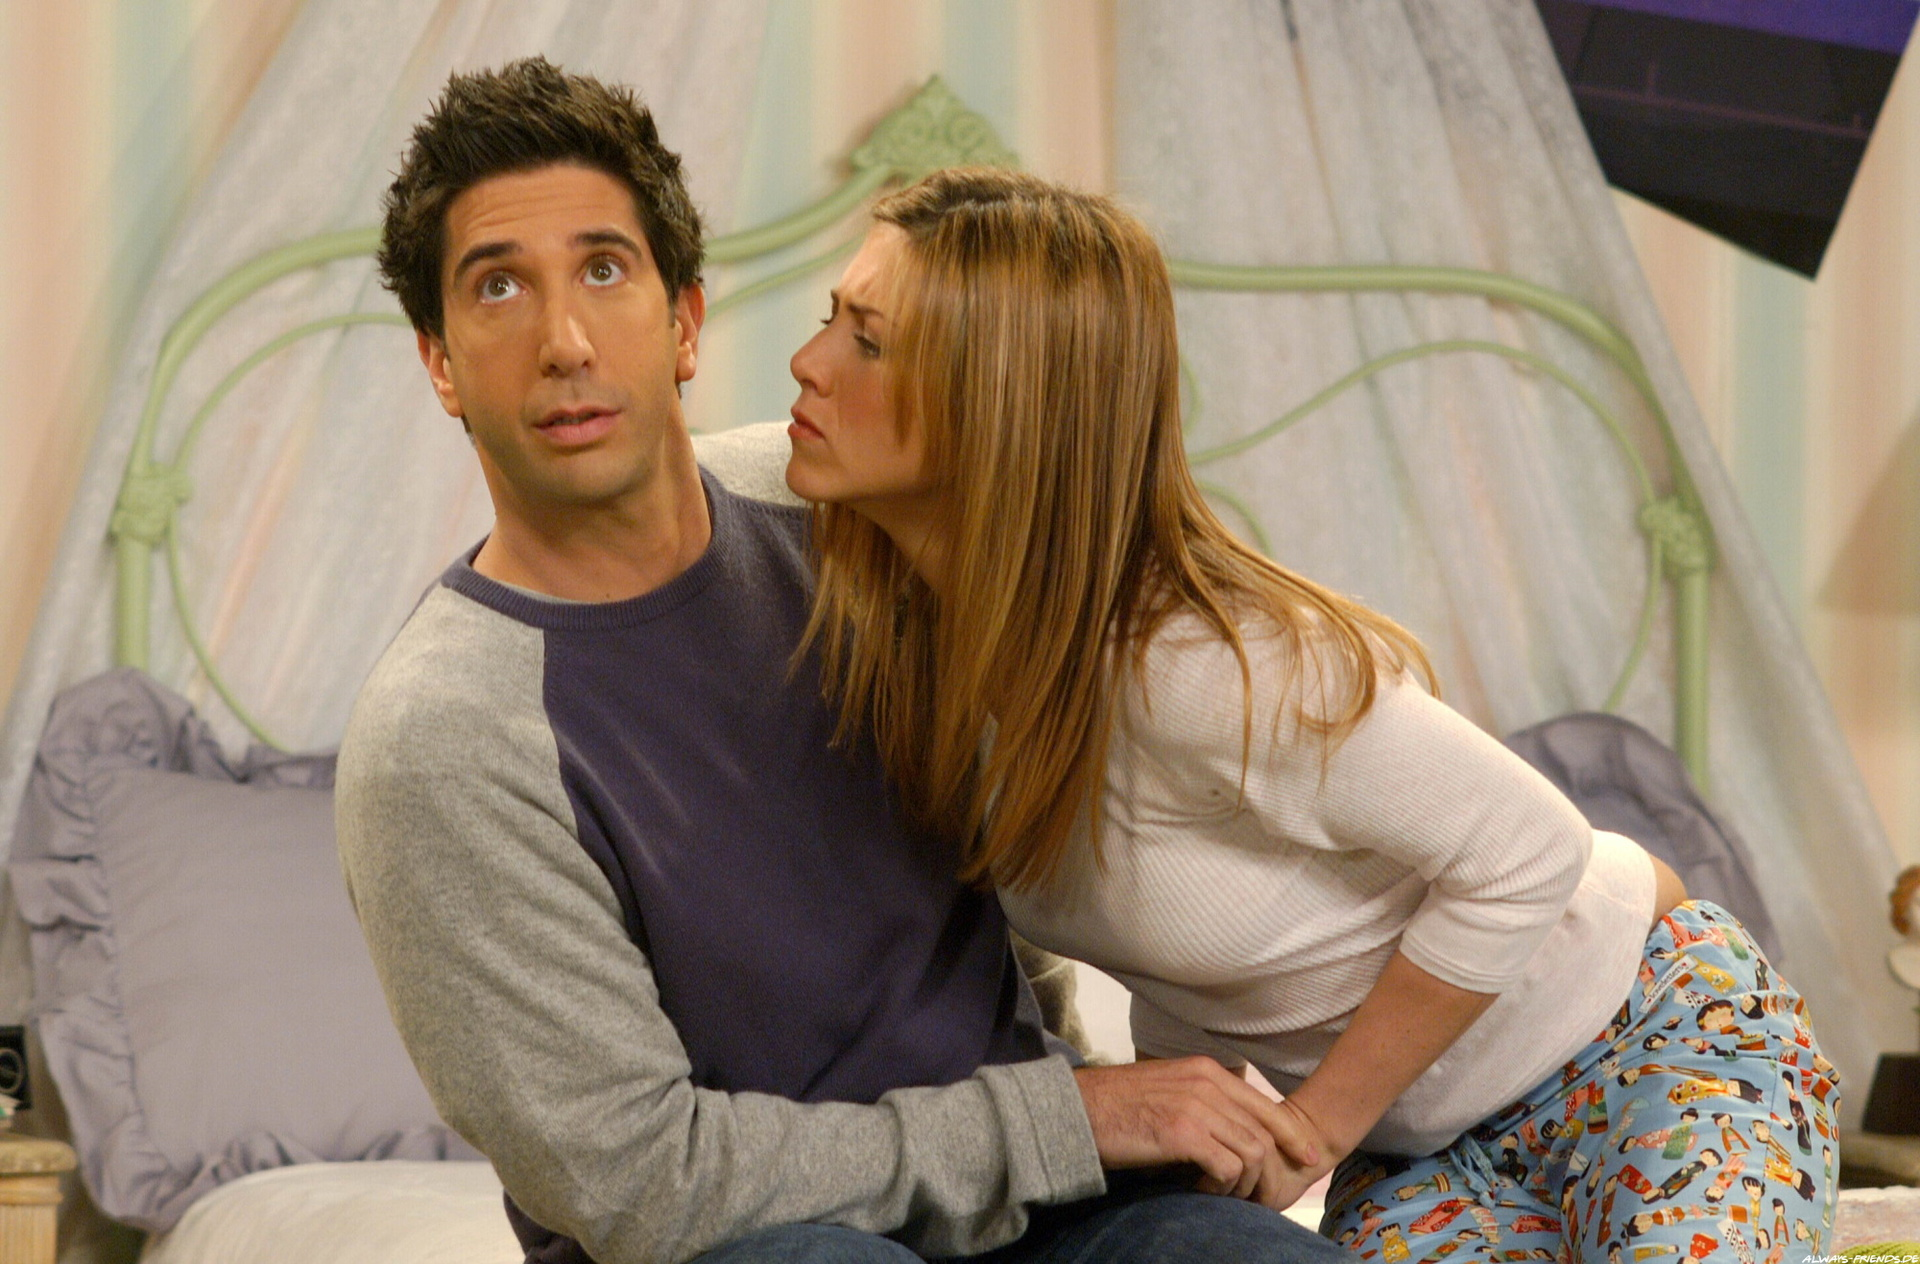 13. Rachel and Ross on 'Friends'